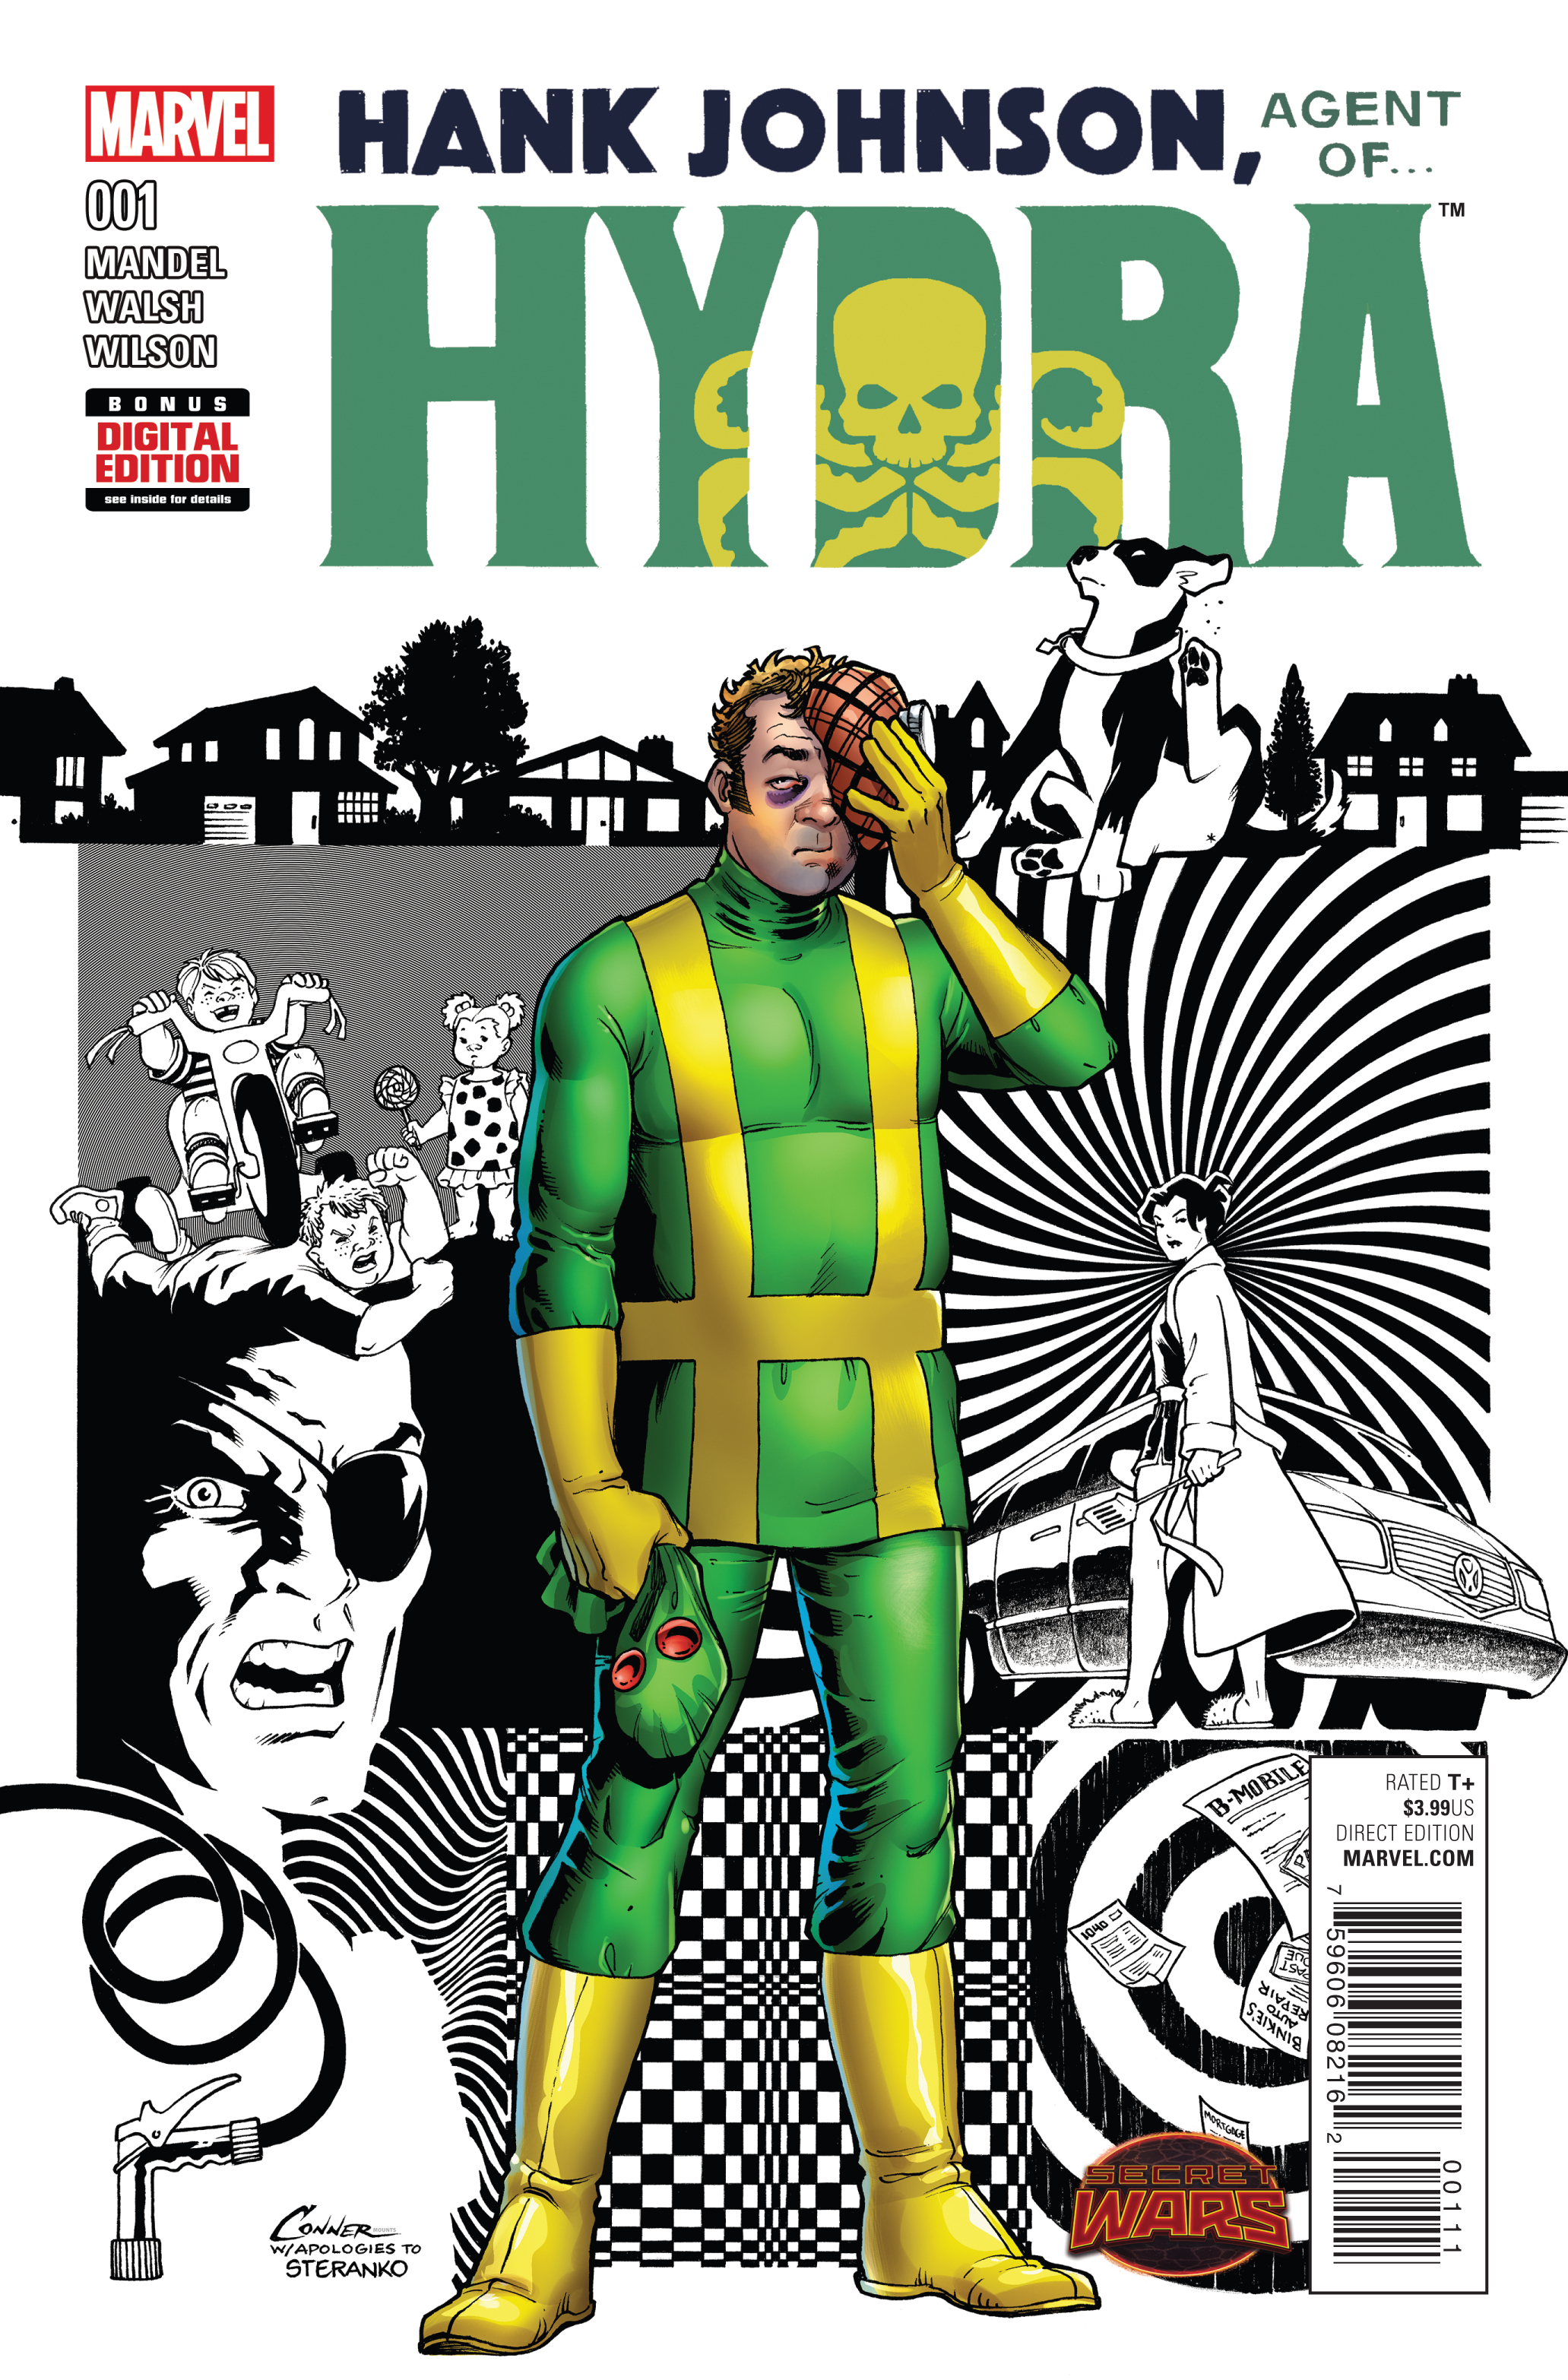 HANK JOHNSON AGENT OF HYDRA #1 SWA